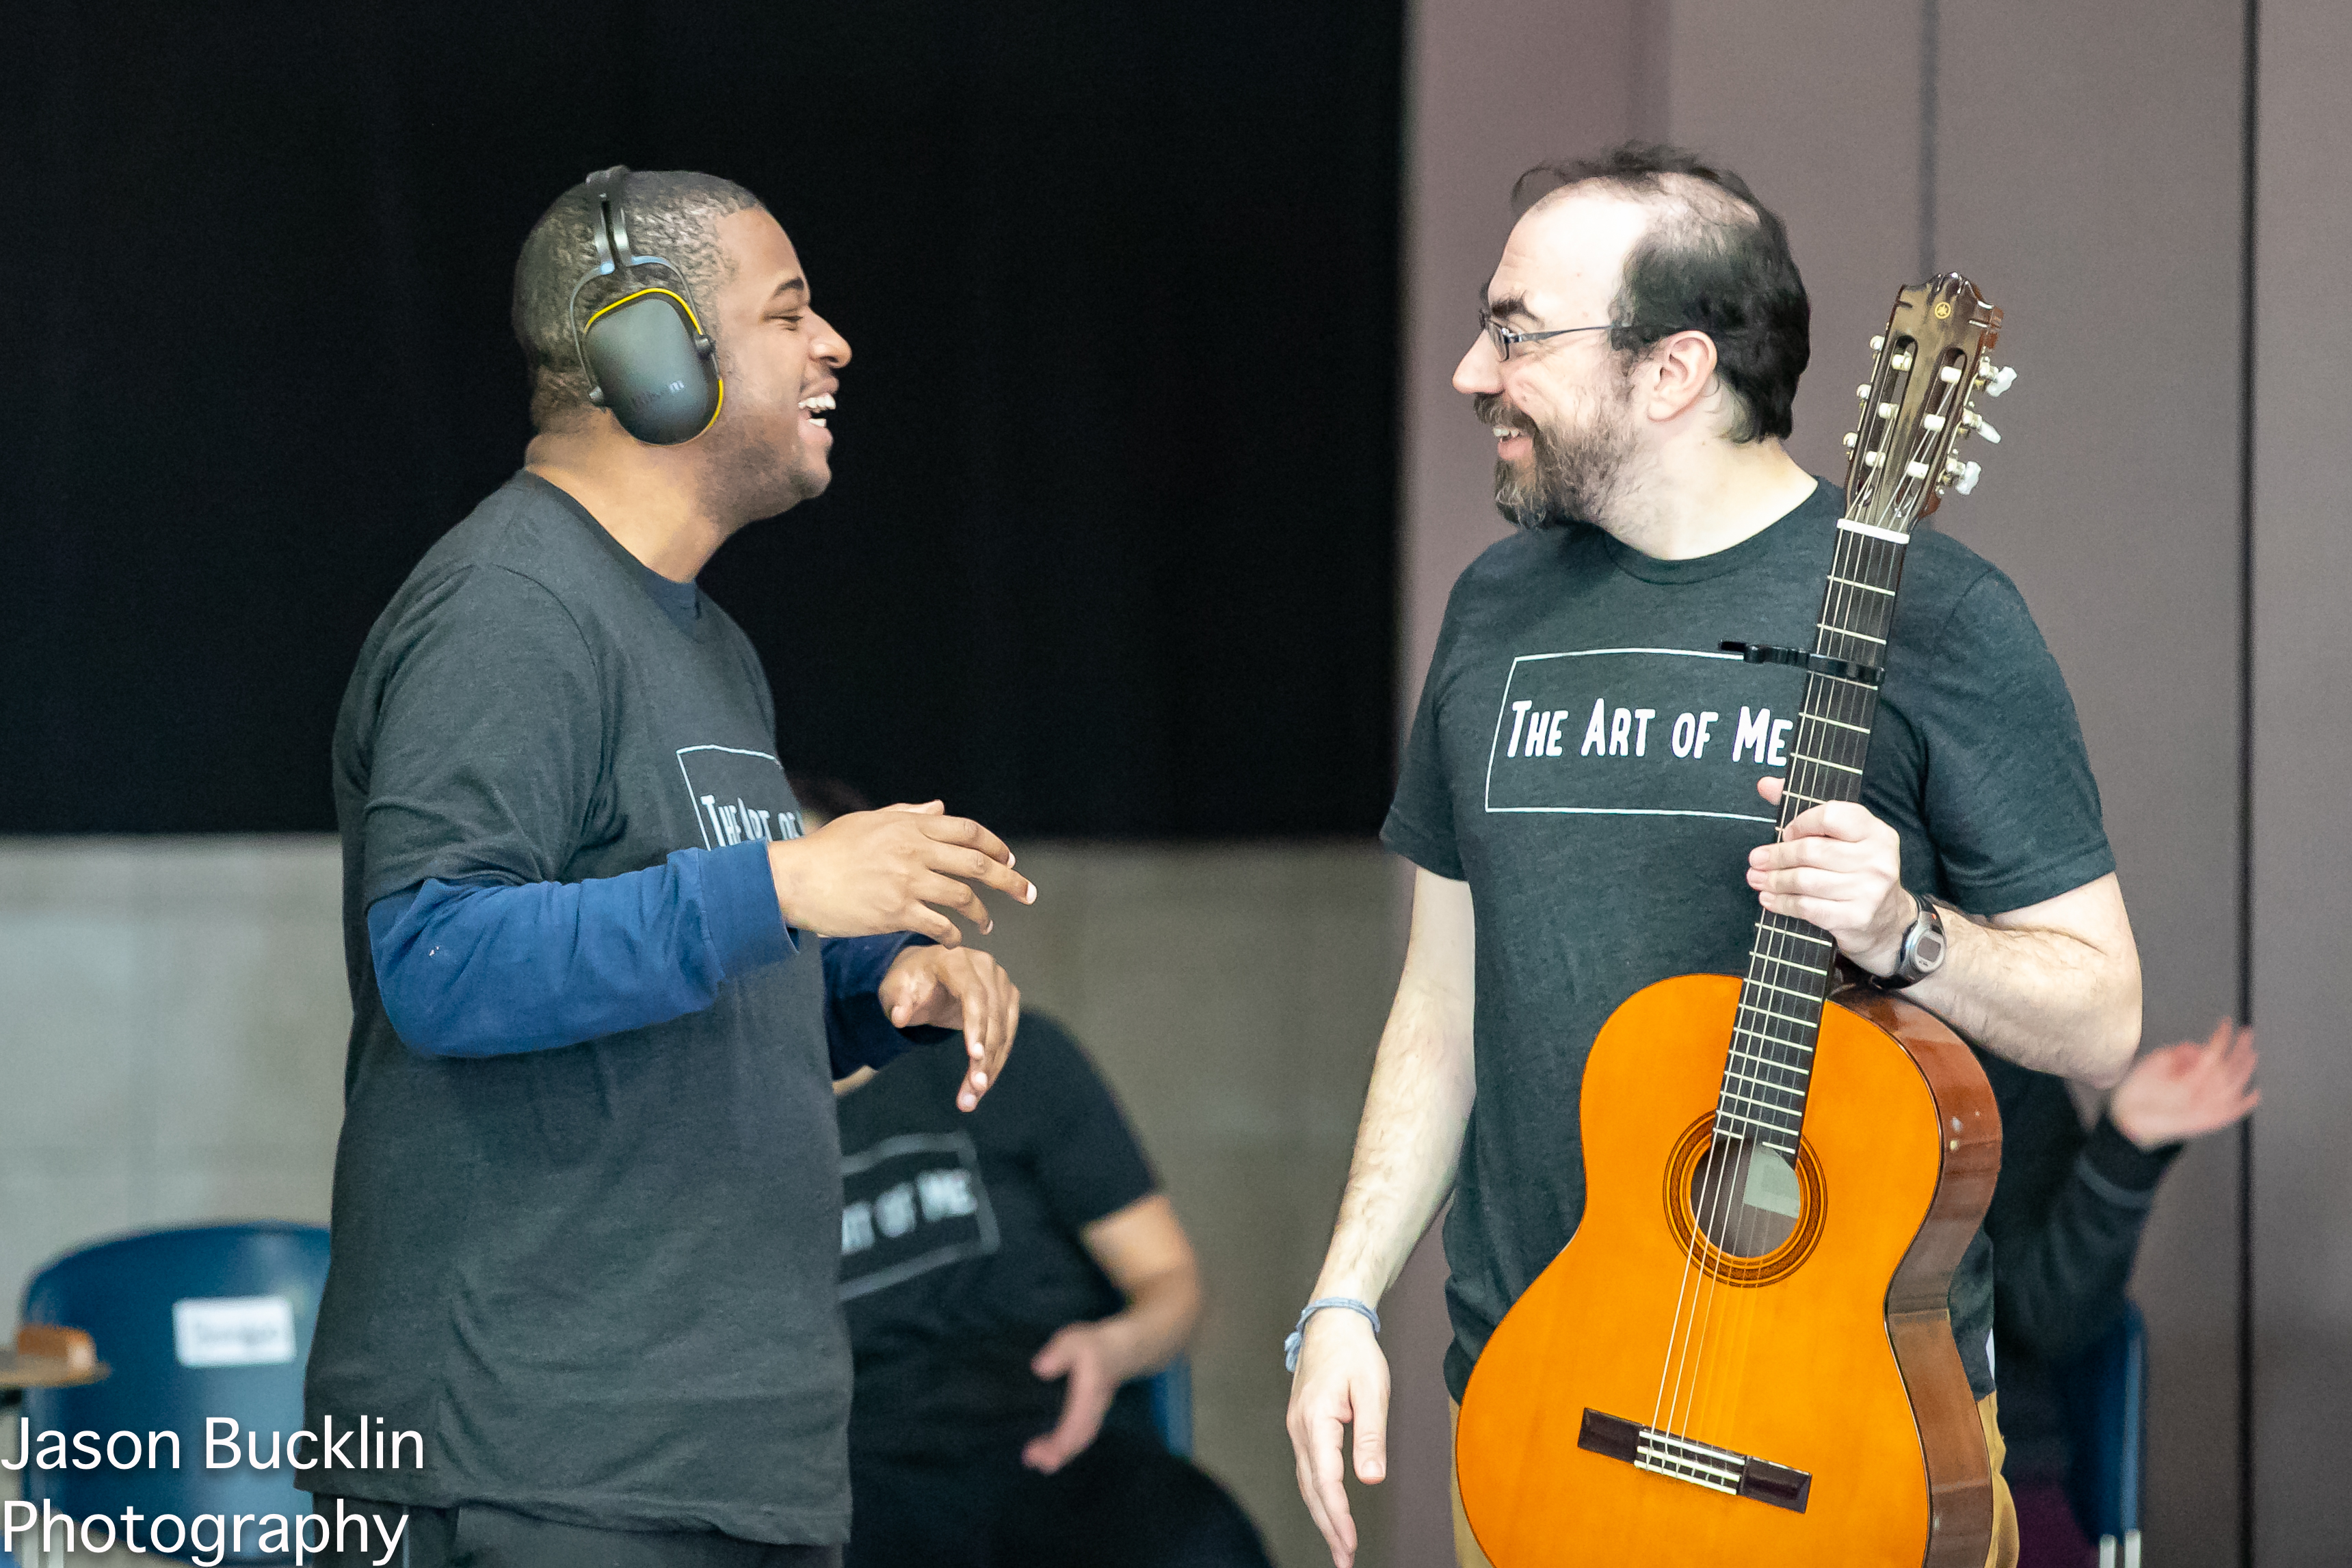 A singer and guitarist smile at each other.